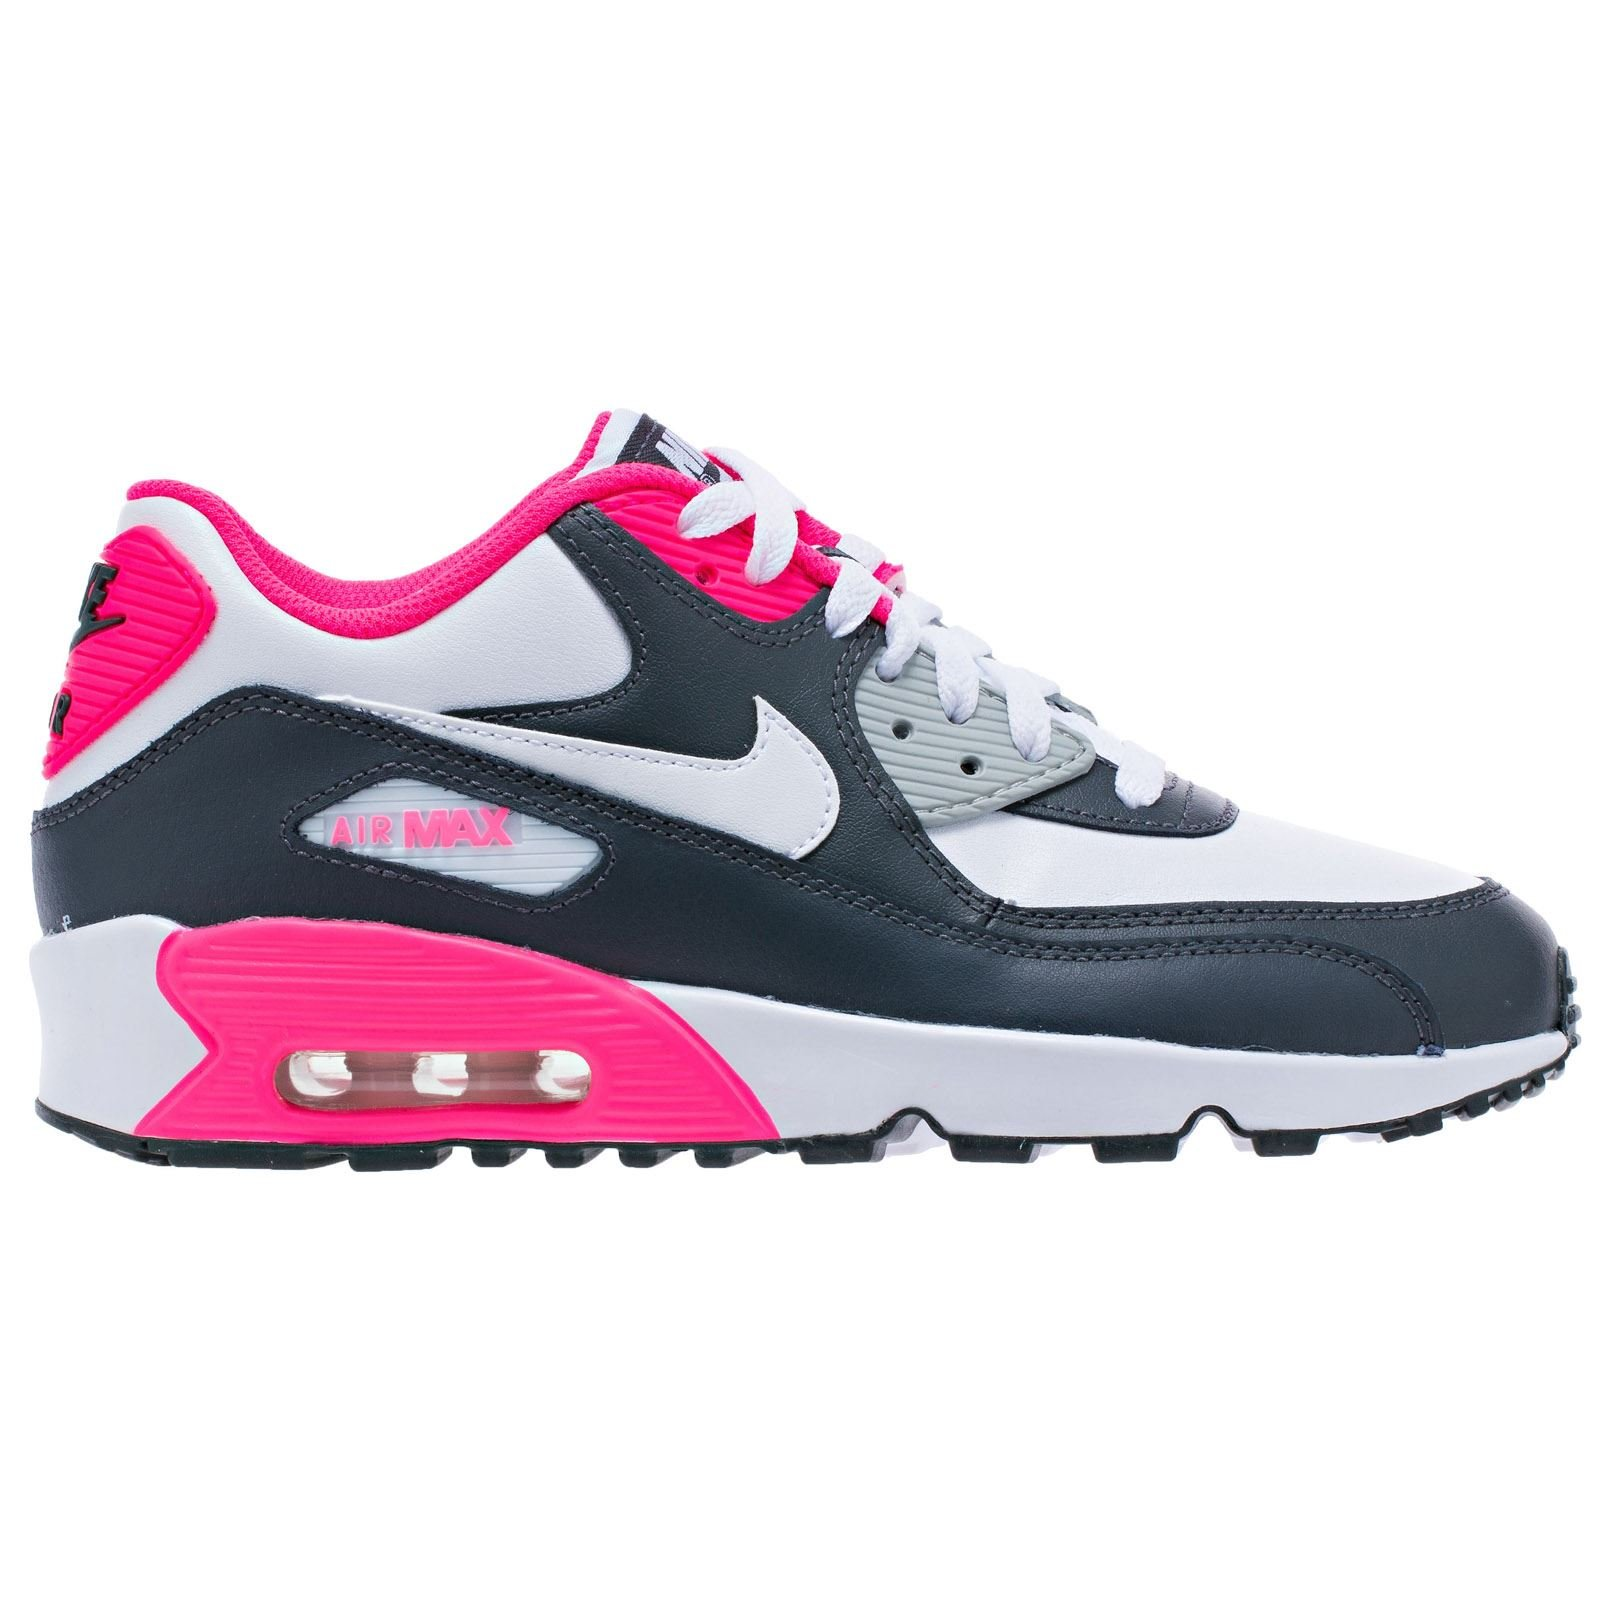 NIKE Air Max 90 Letter Big Kids Style Shoes : 833376, Anthracite/White-Hyper Pink-Metallic Silver, 5.5